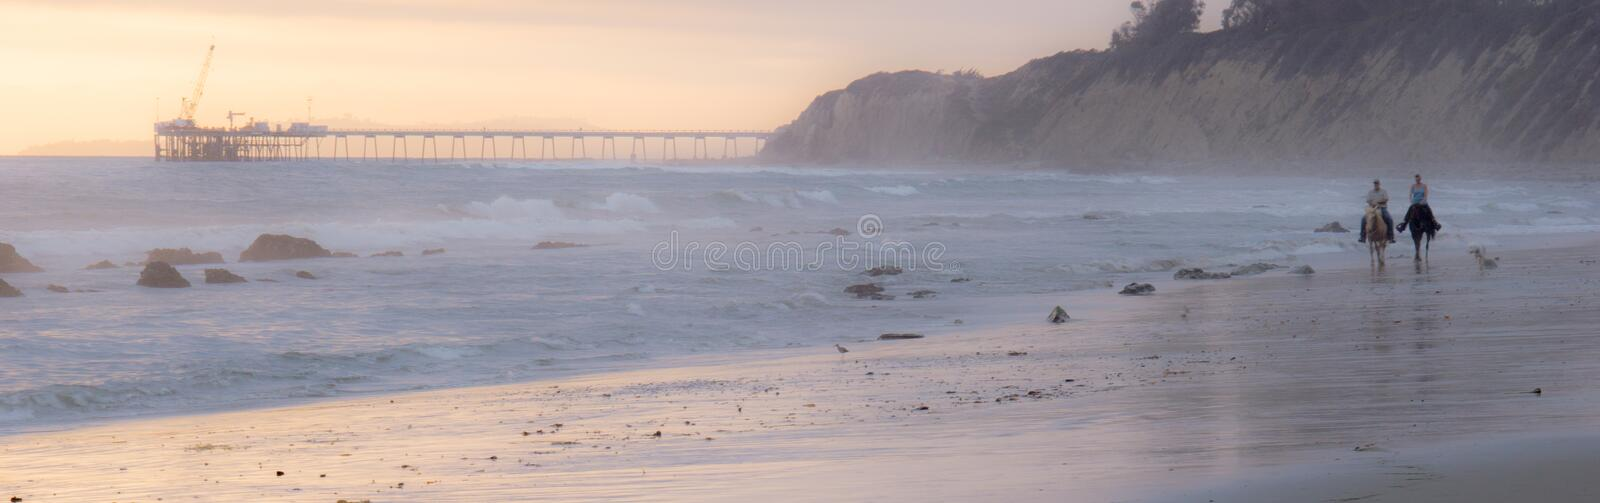 Horse riders on the beach royalty free stock images